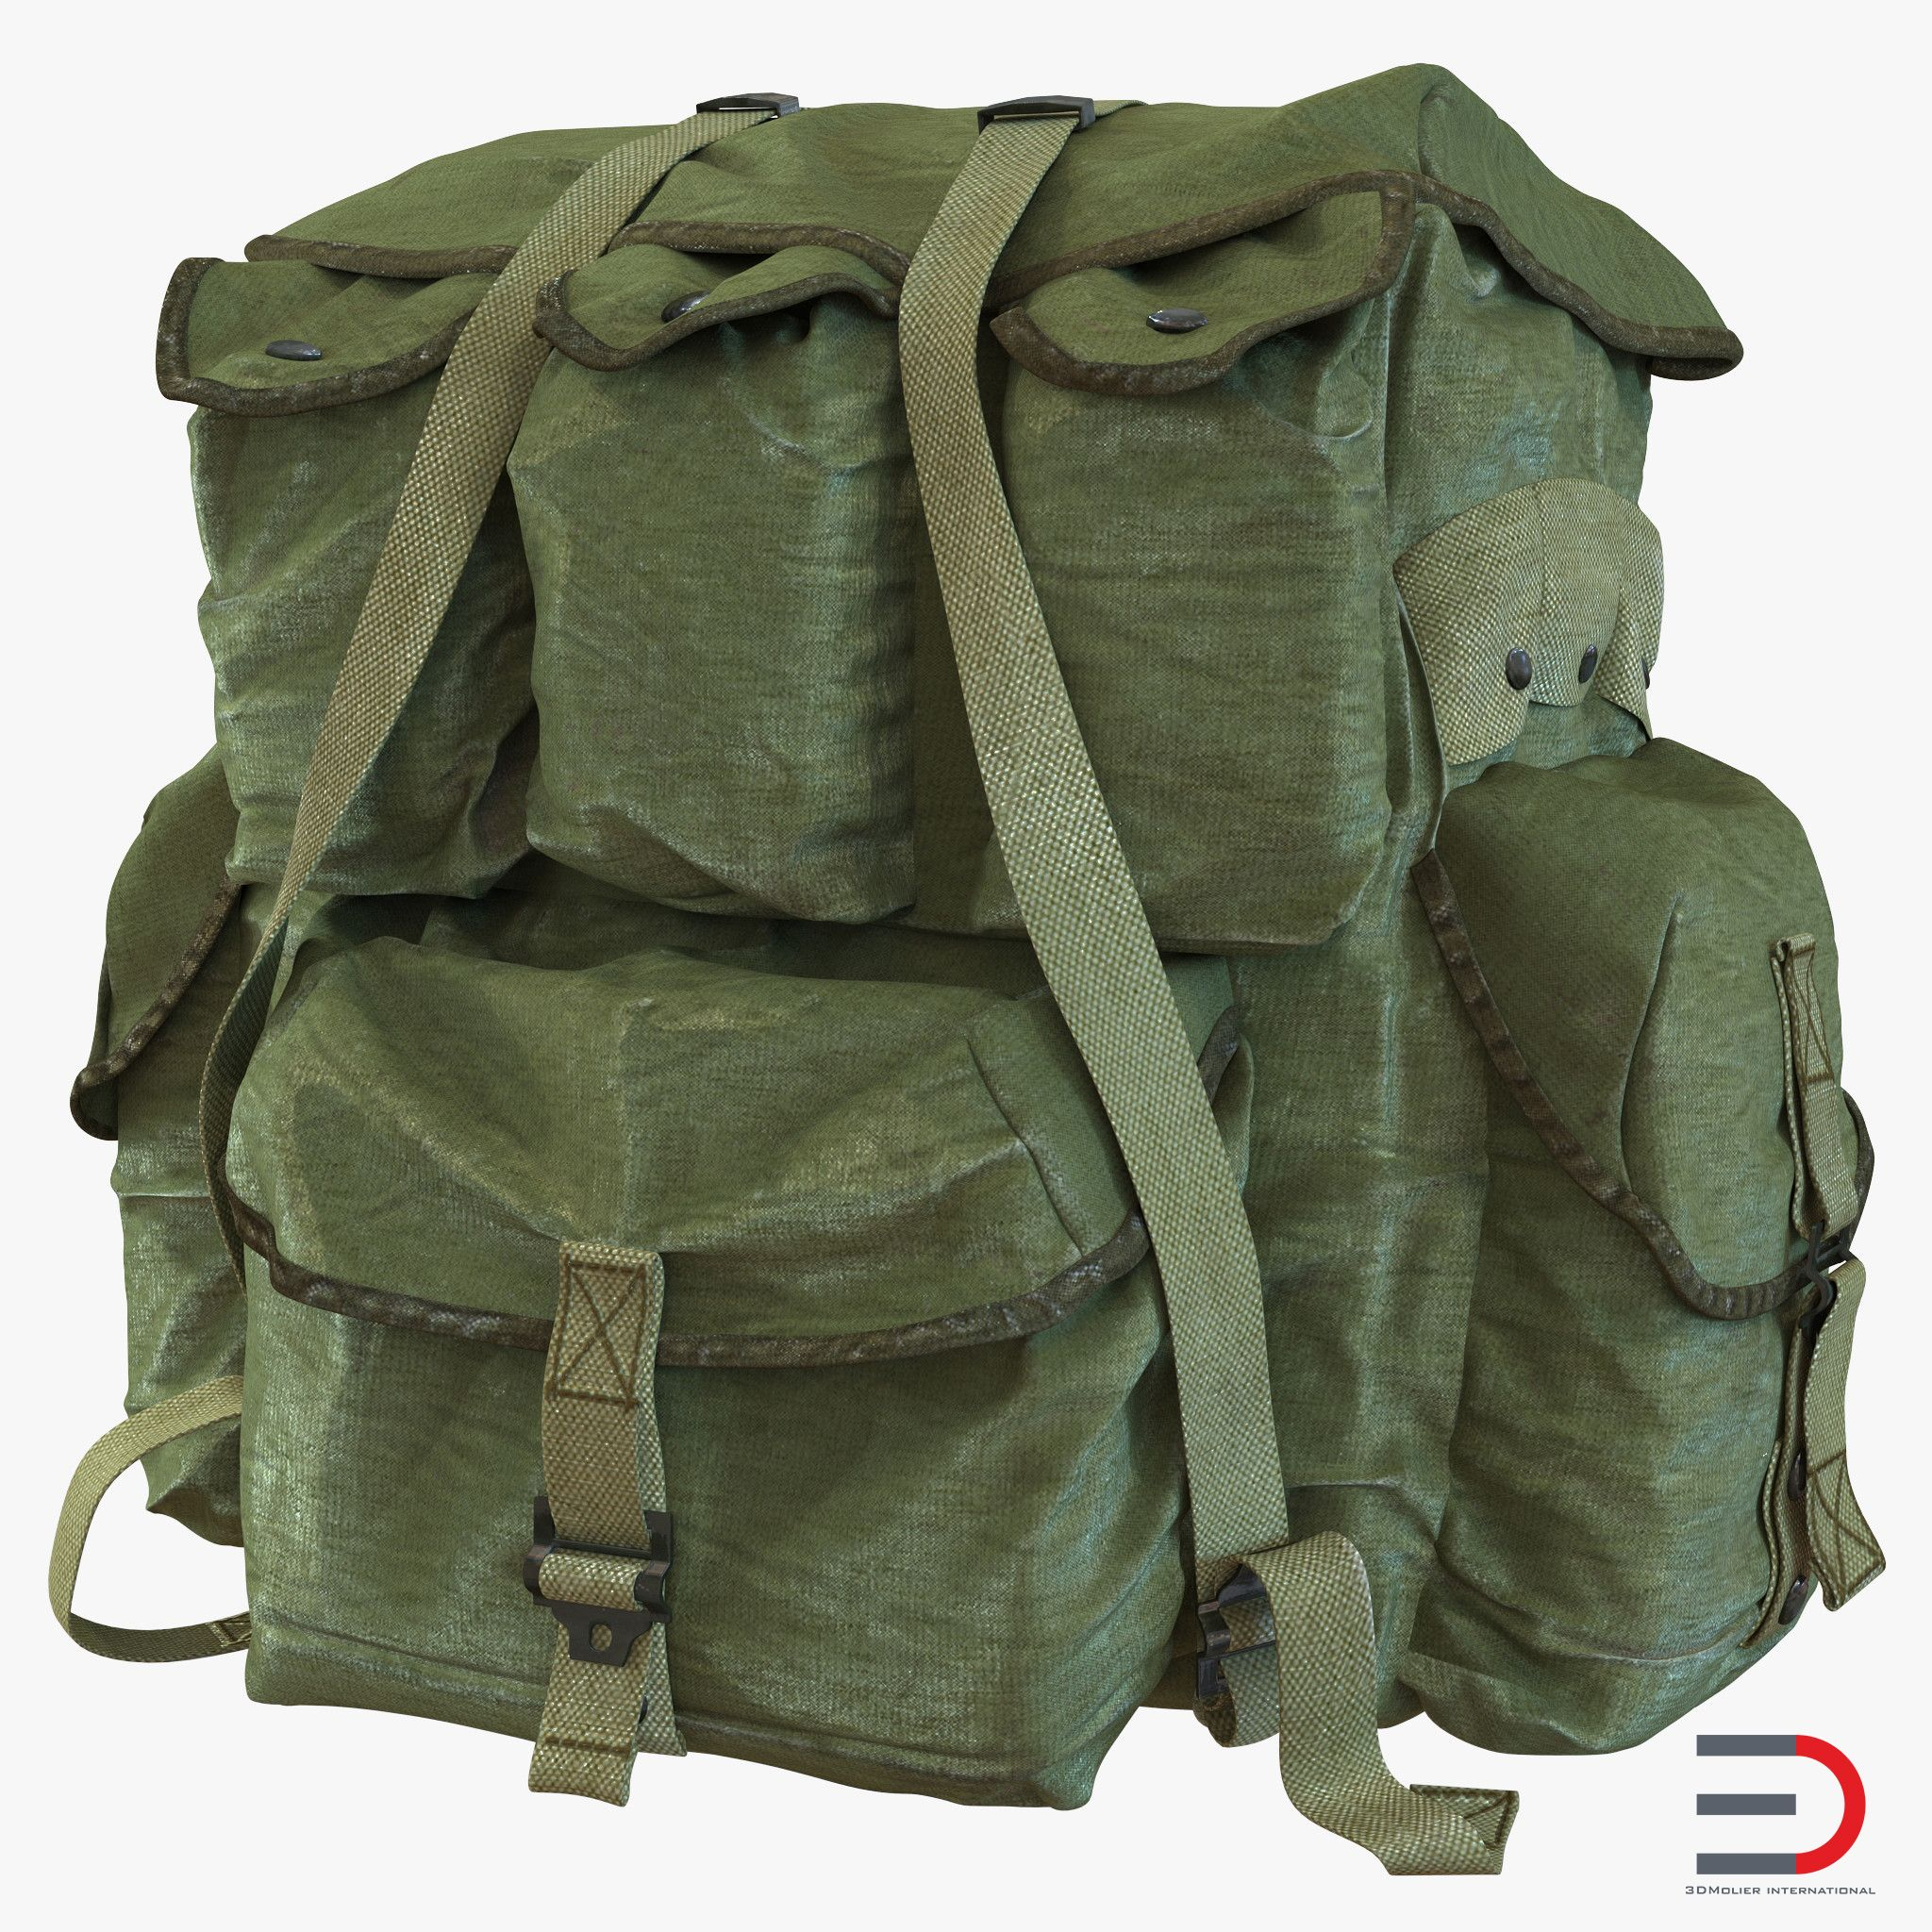 Military Backpack 3d model | Sport Accessories 3D Models